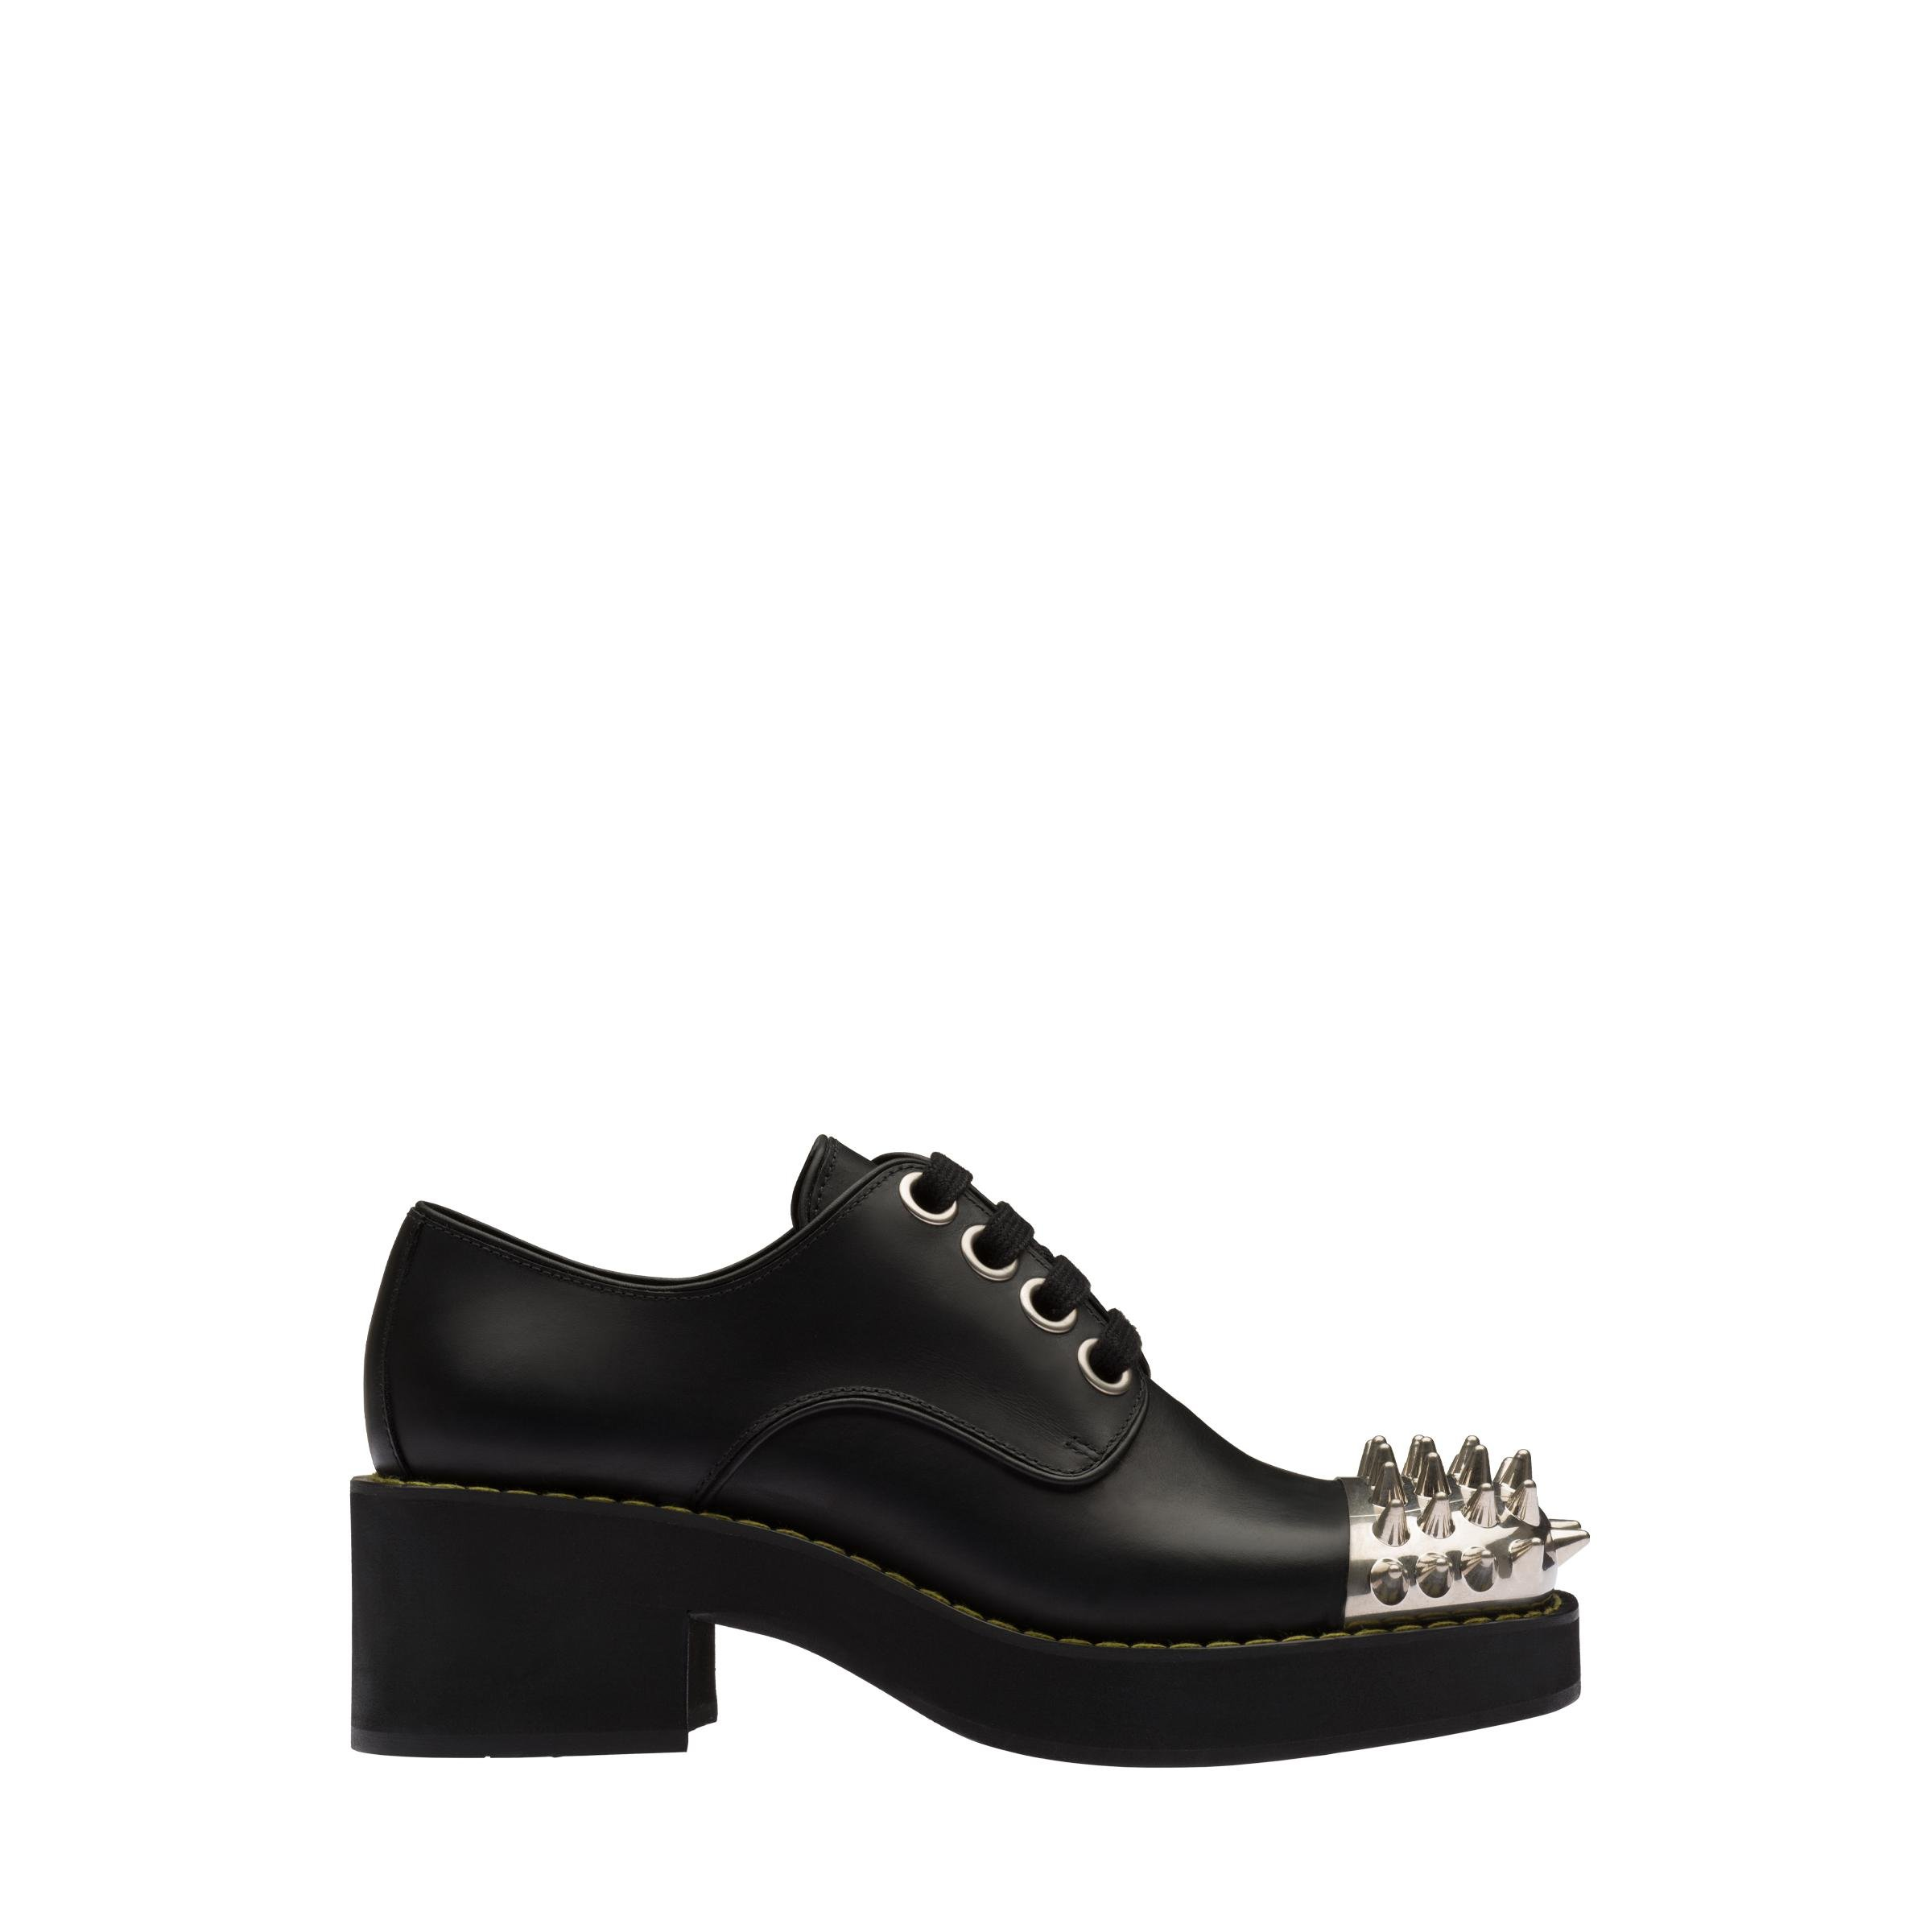 Studded Leather Laced Derby Shoes Women Black 2